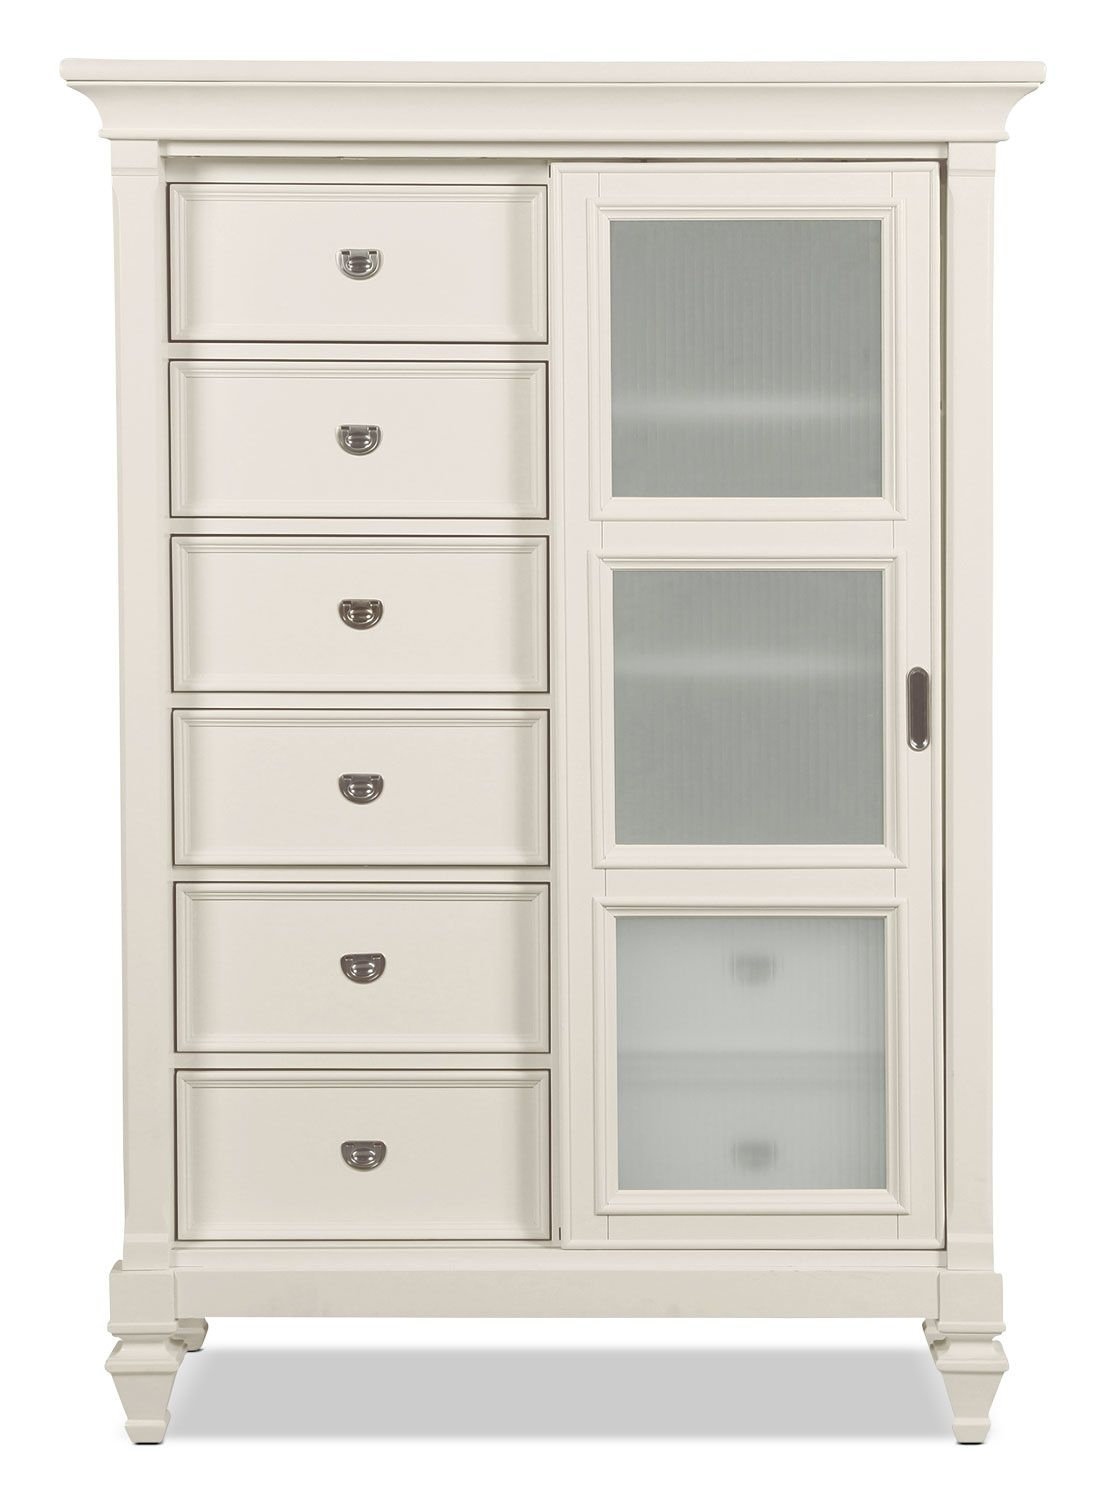 Shop At Levin S For A Wide Selection Of Furniture And Mattresses Enhance Your Home With Stylish Furniture From Our Store Holland House Hom Furniture Furniture